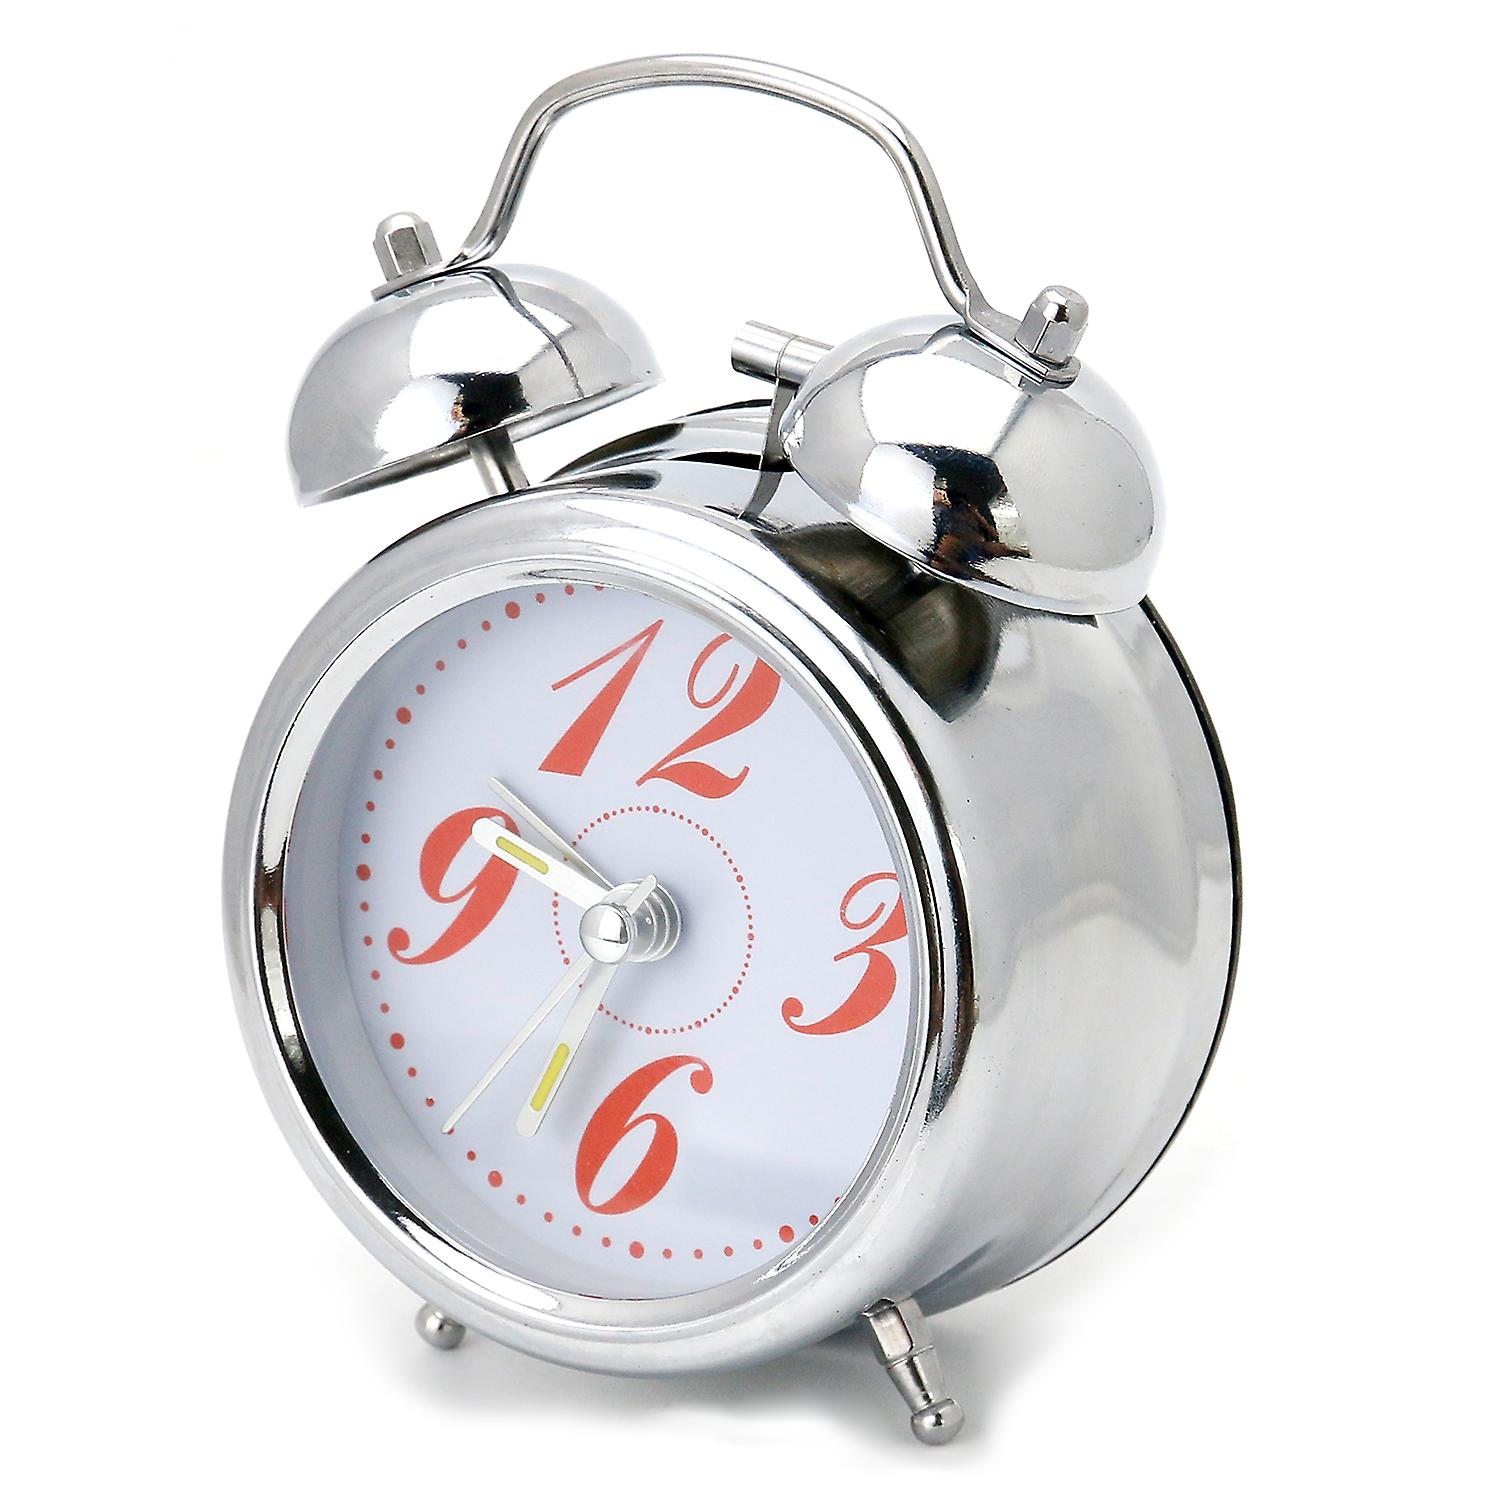 TRIXES Classic Compact Silver Chrome Effect Alarm Clock